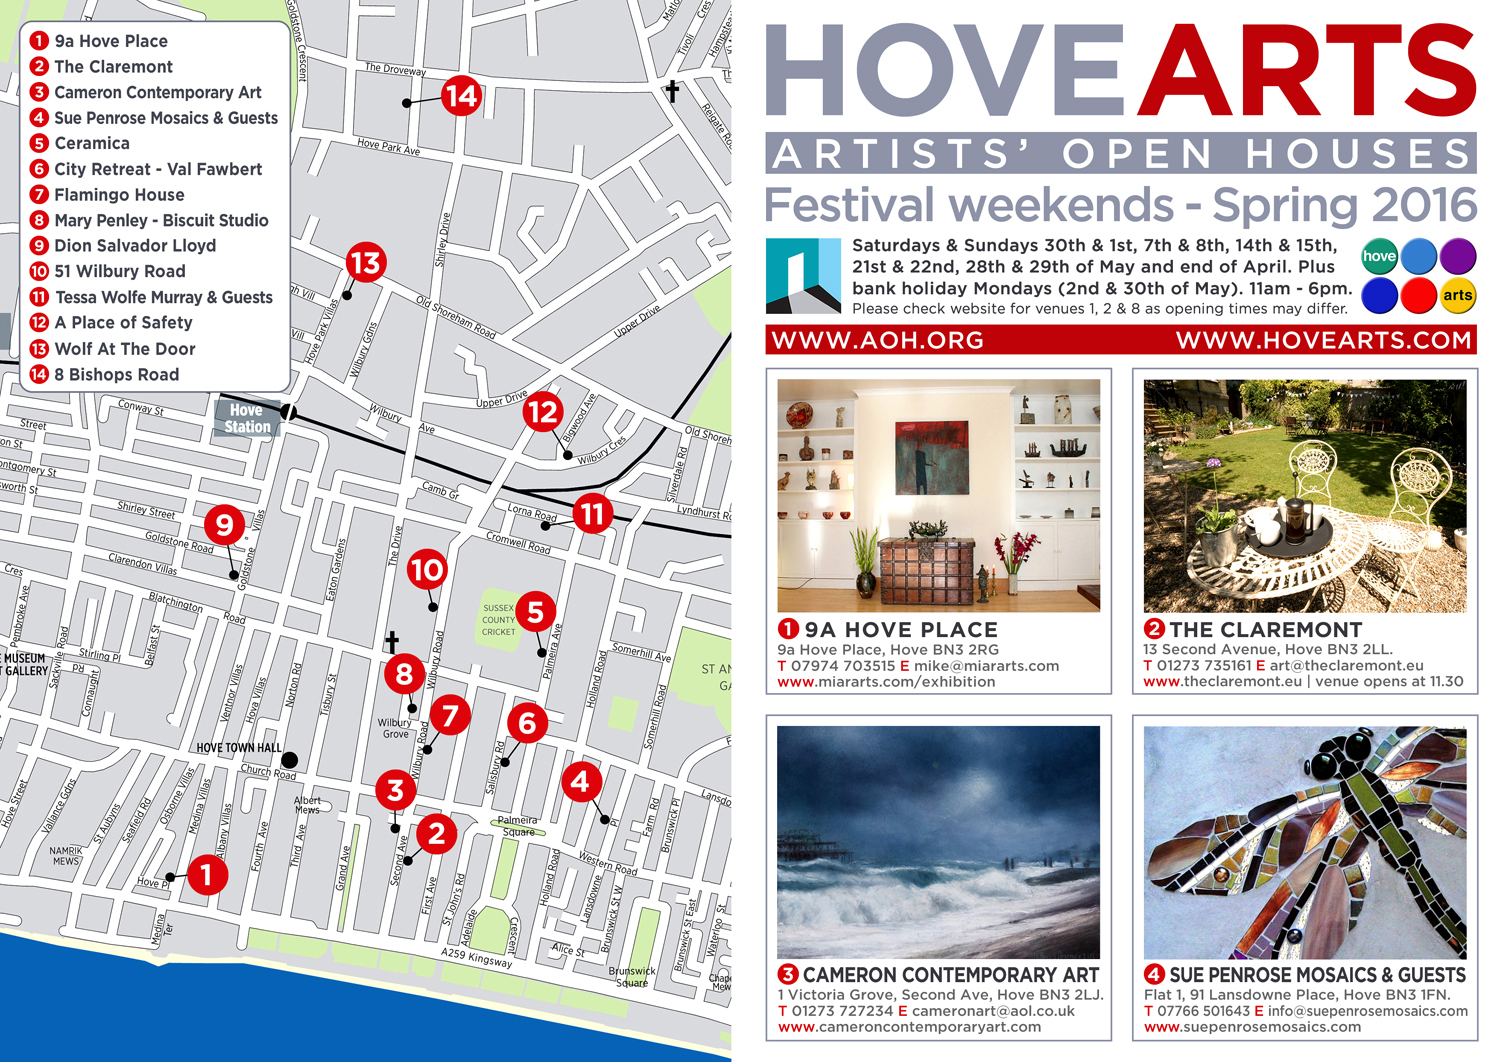 Hove Arts Leaflet 2016 - outside - designed by Hook Web & Print